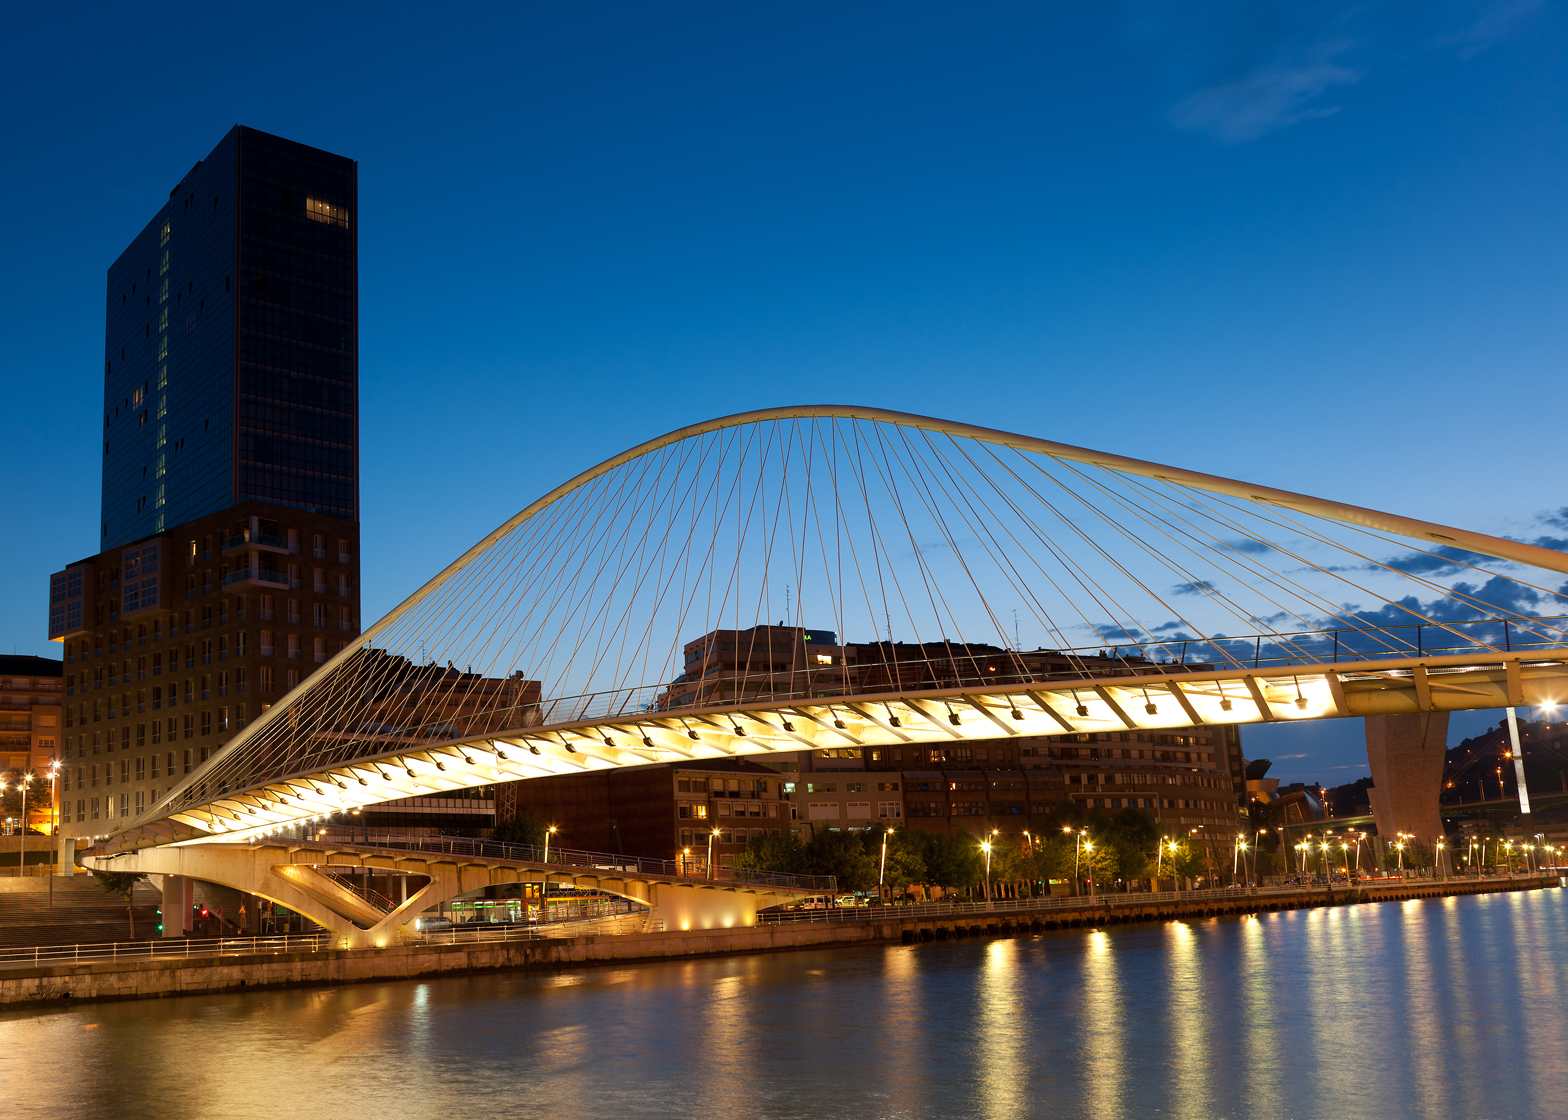 Campo Volantin Footbridge by Santiago Calatrava